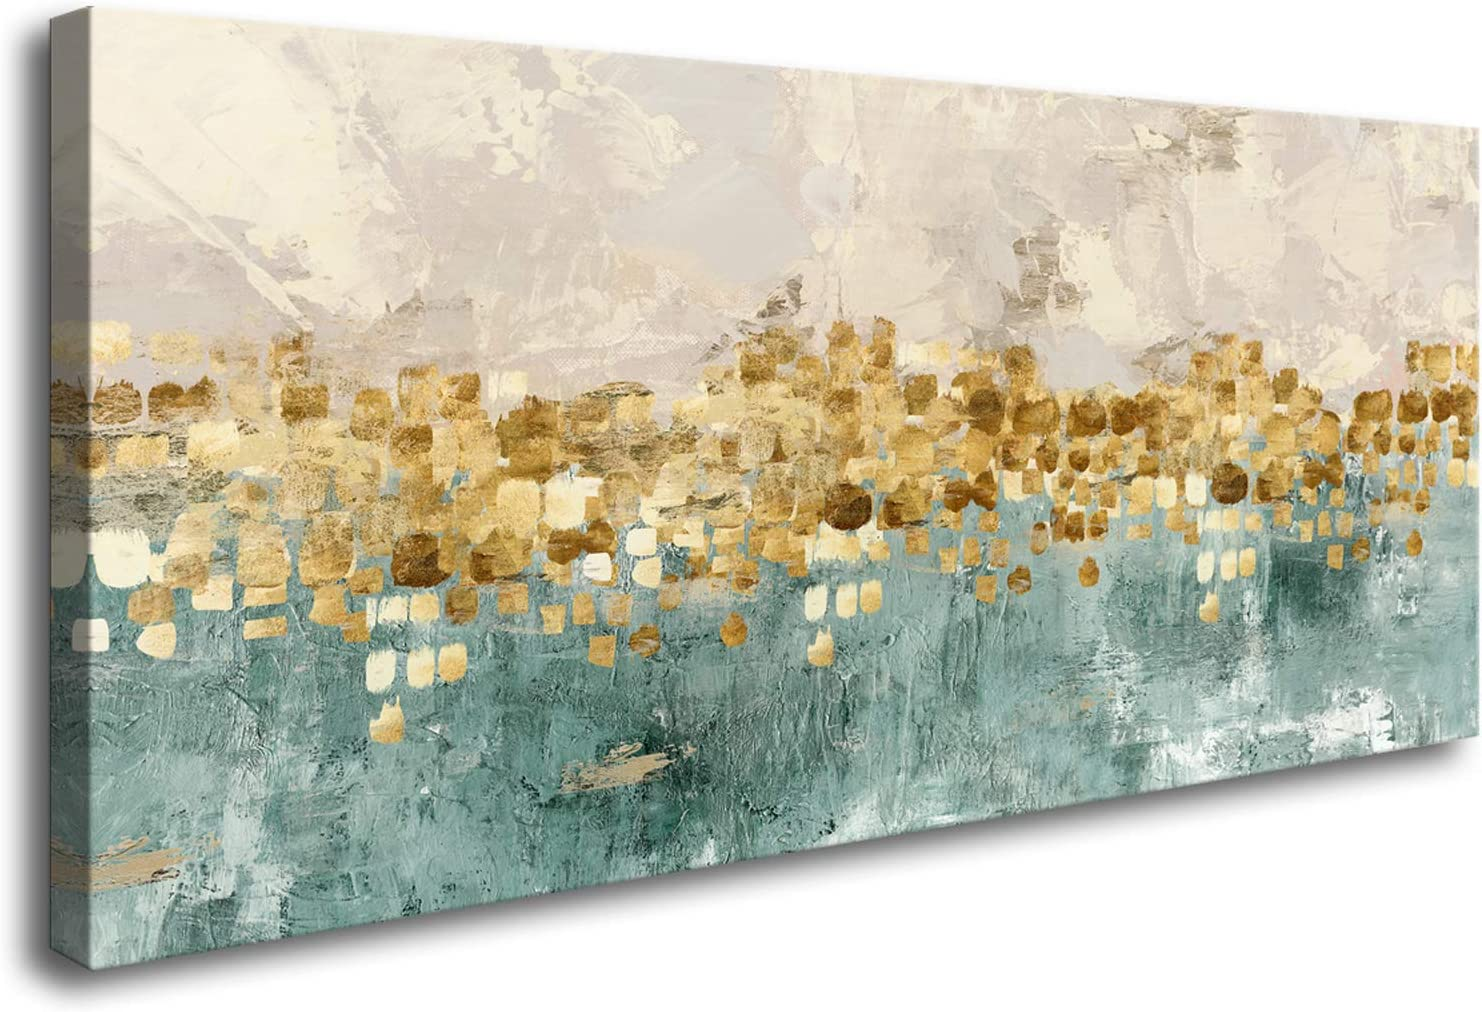 DZL Art A74650 Brown and Blue Abstract Painting Modern Decor Wall Art Tan Color Canvas Gray Painting Contemporary Decor Abstract Canvas Living Room Art Painting